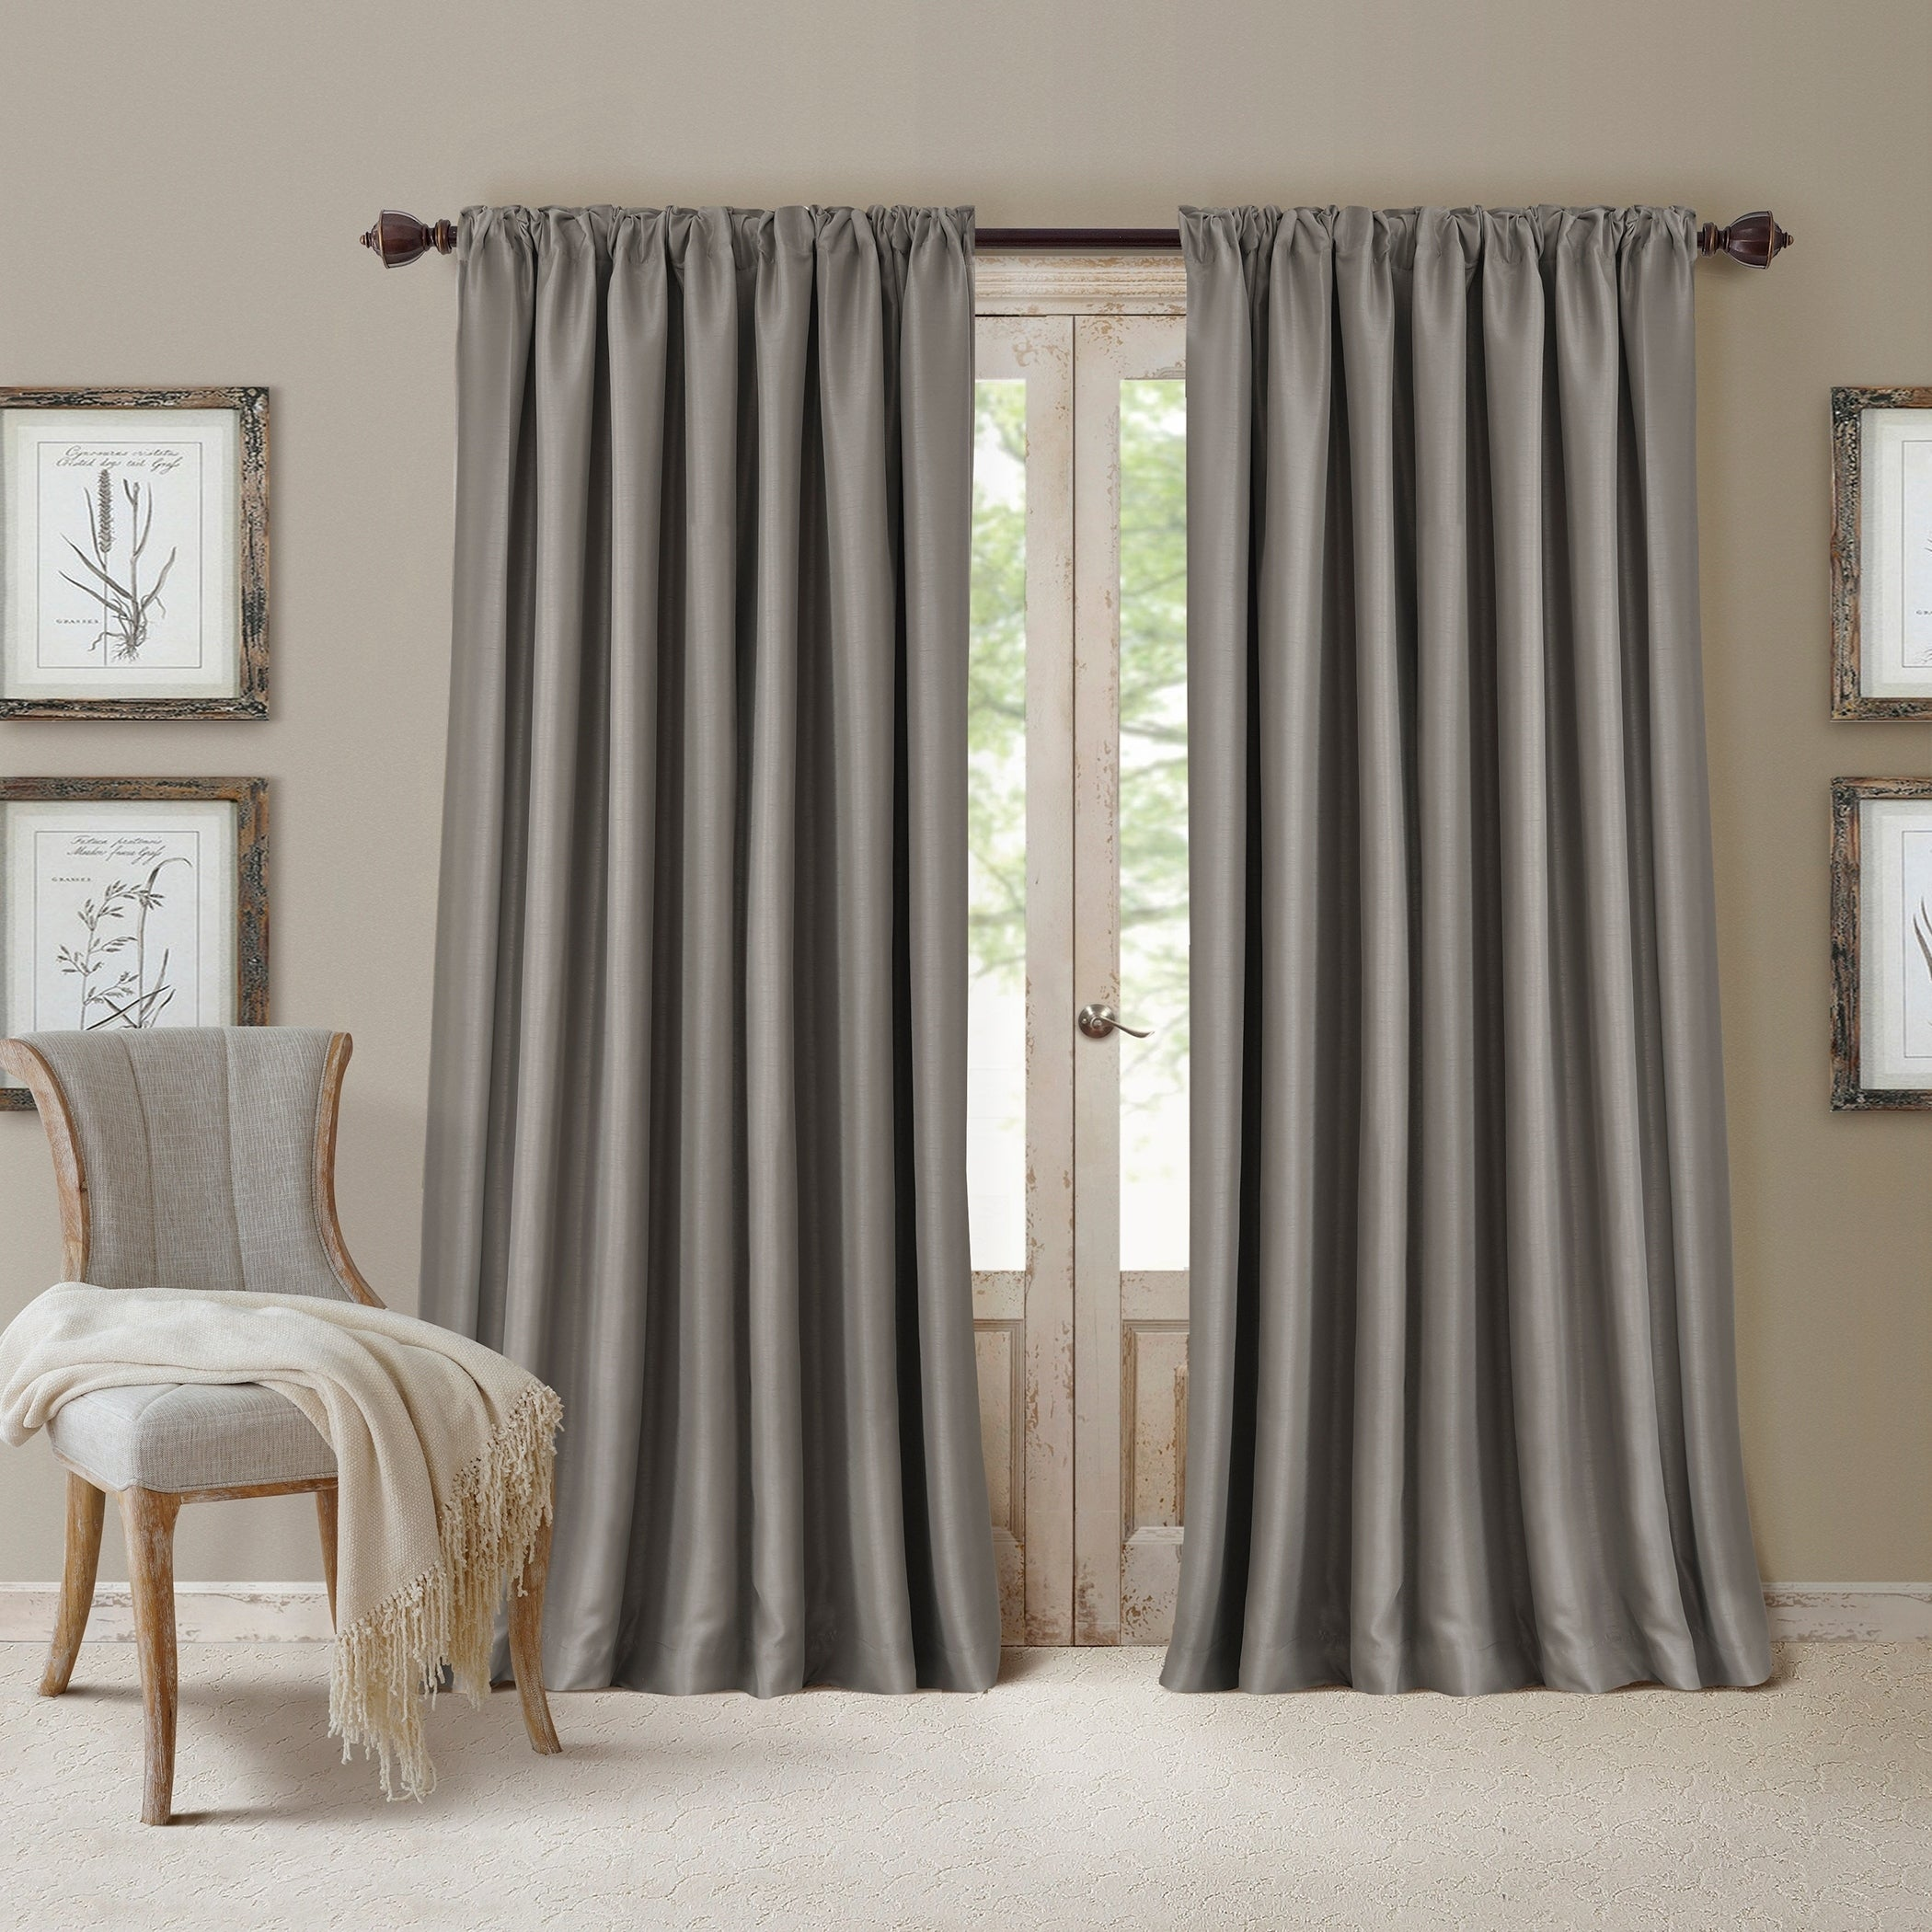 Shop Elrene All Seasons Blackout Curtain Panel - Free Shipping On Orders Over $45 - Overstock.com - 14999475